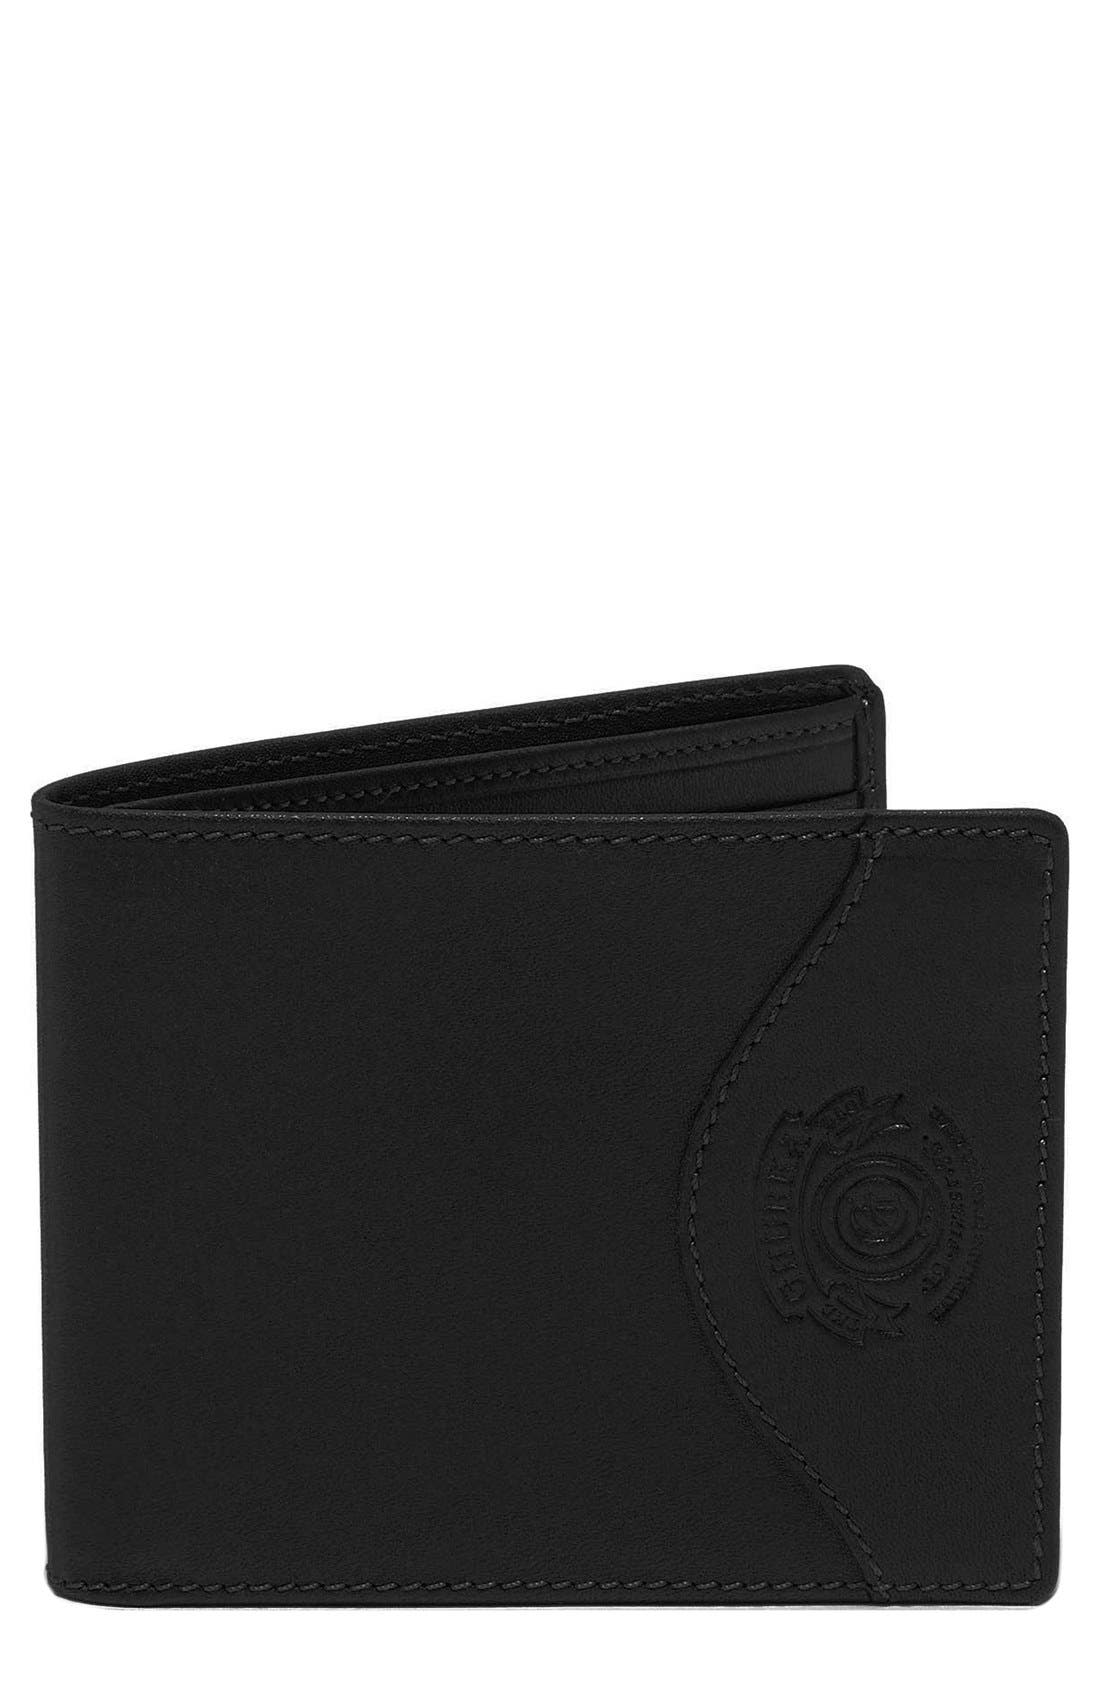 Ghurka Classic Leather Wallet